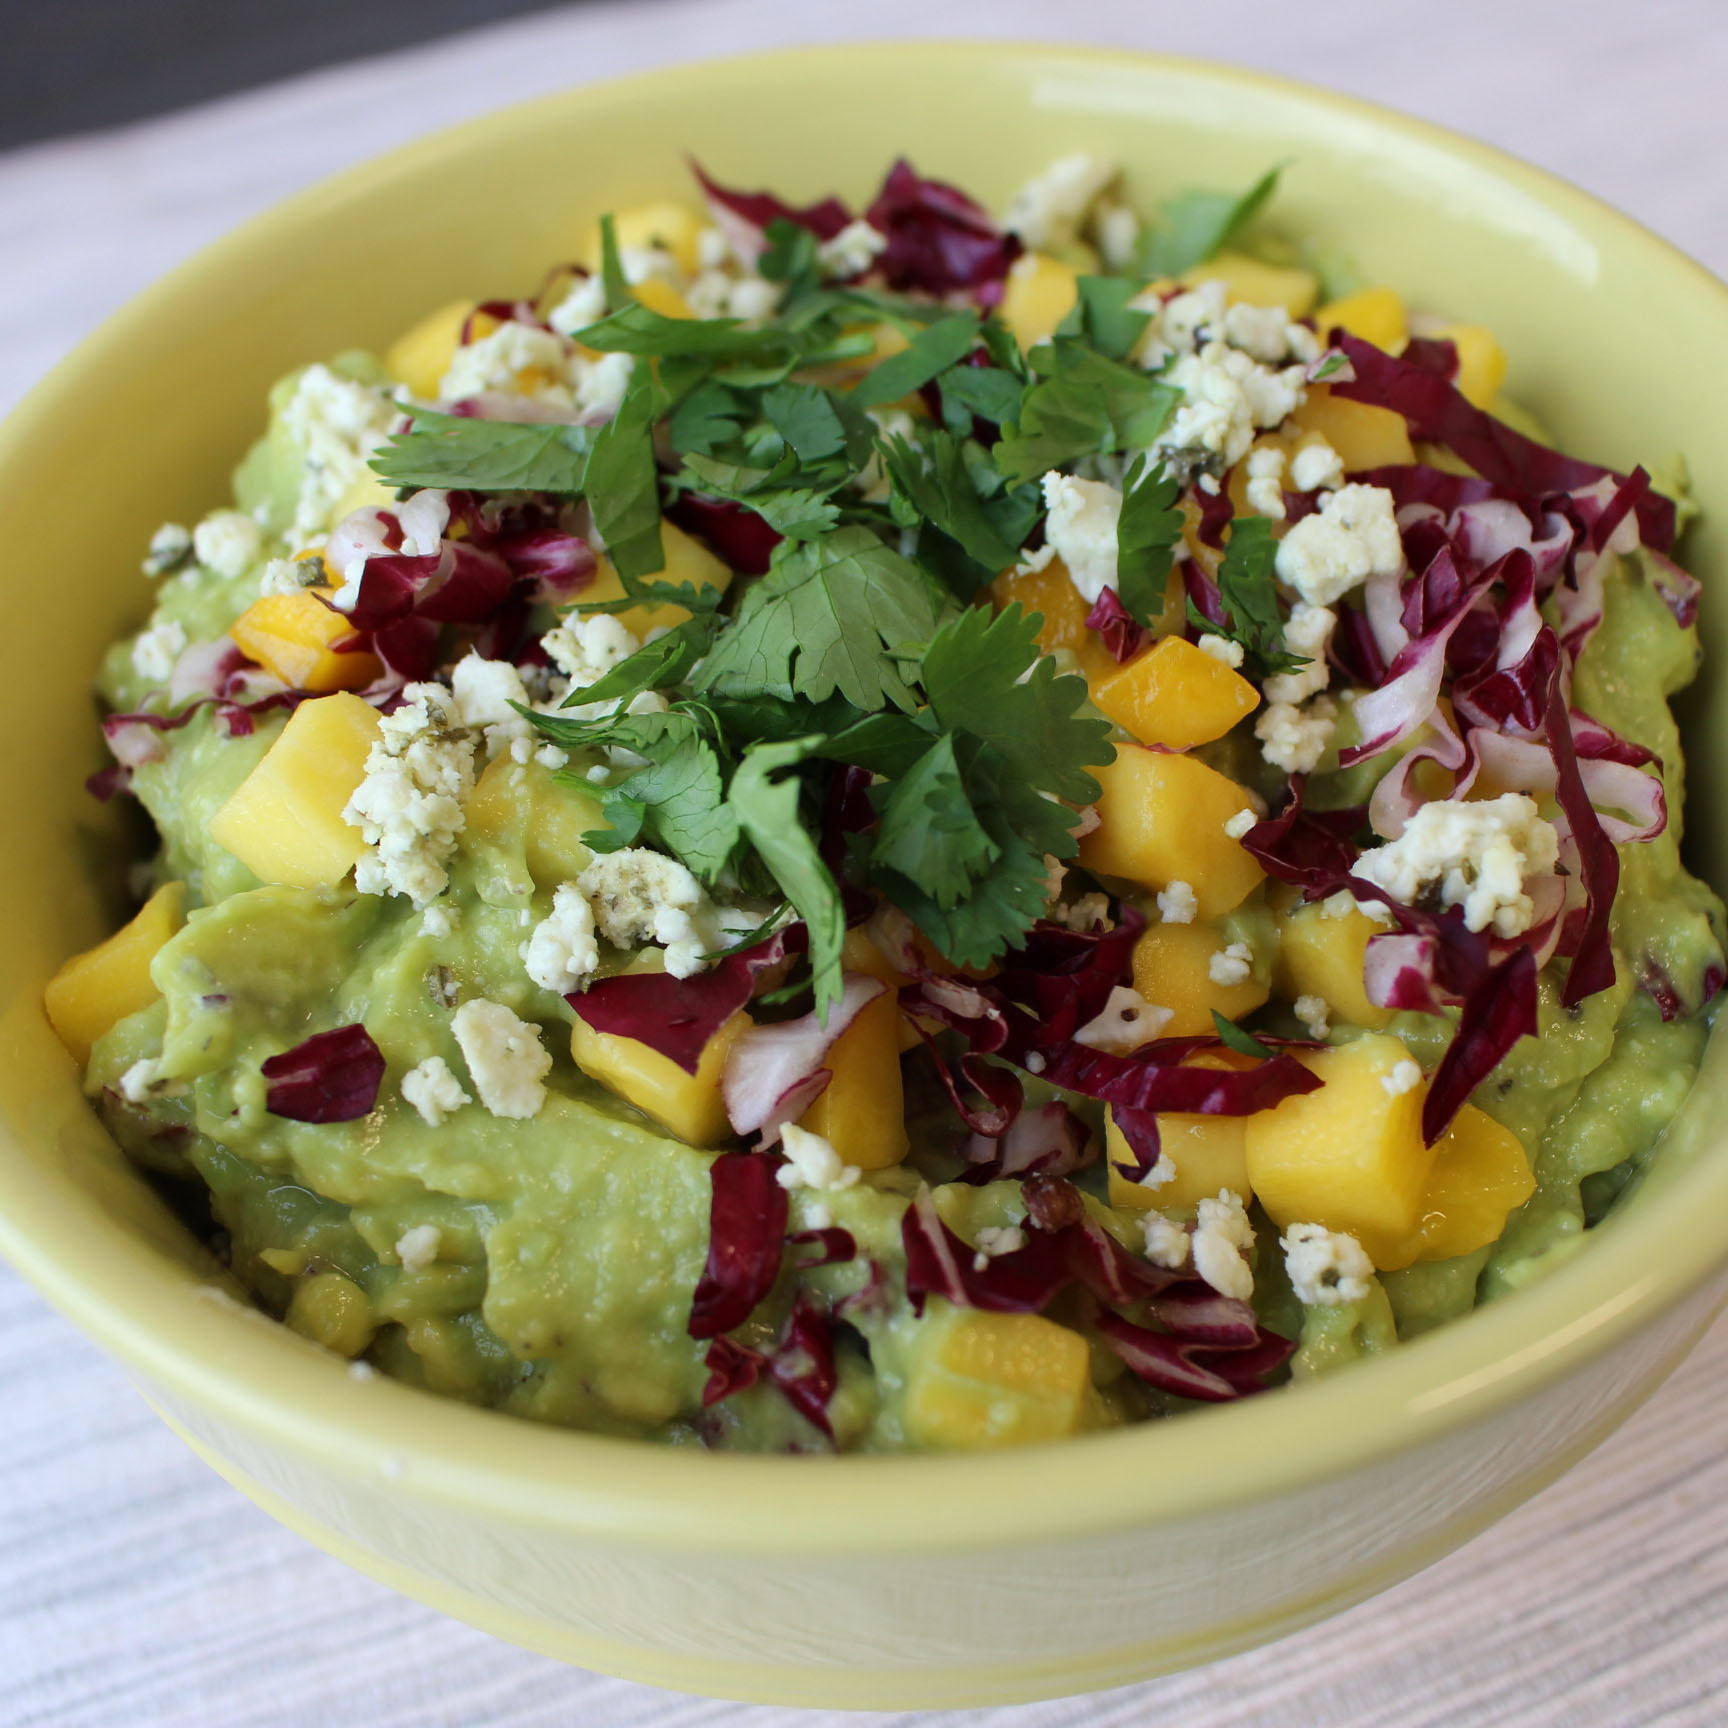 Avocado and Mango Mash Bowl